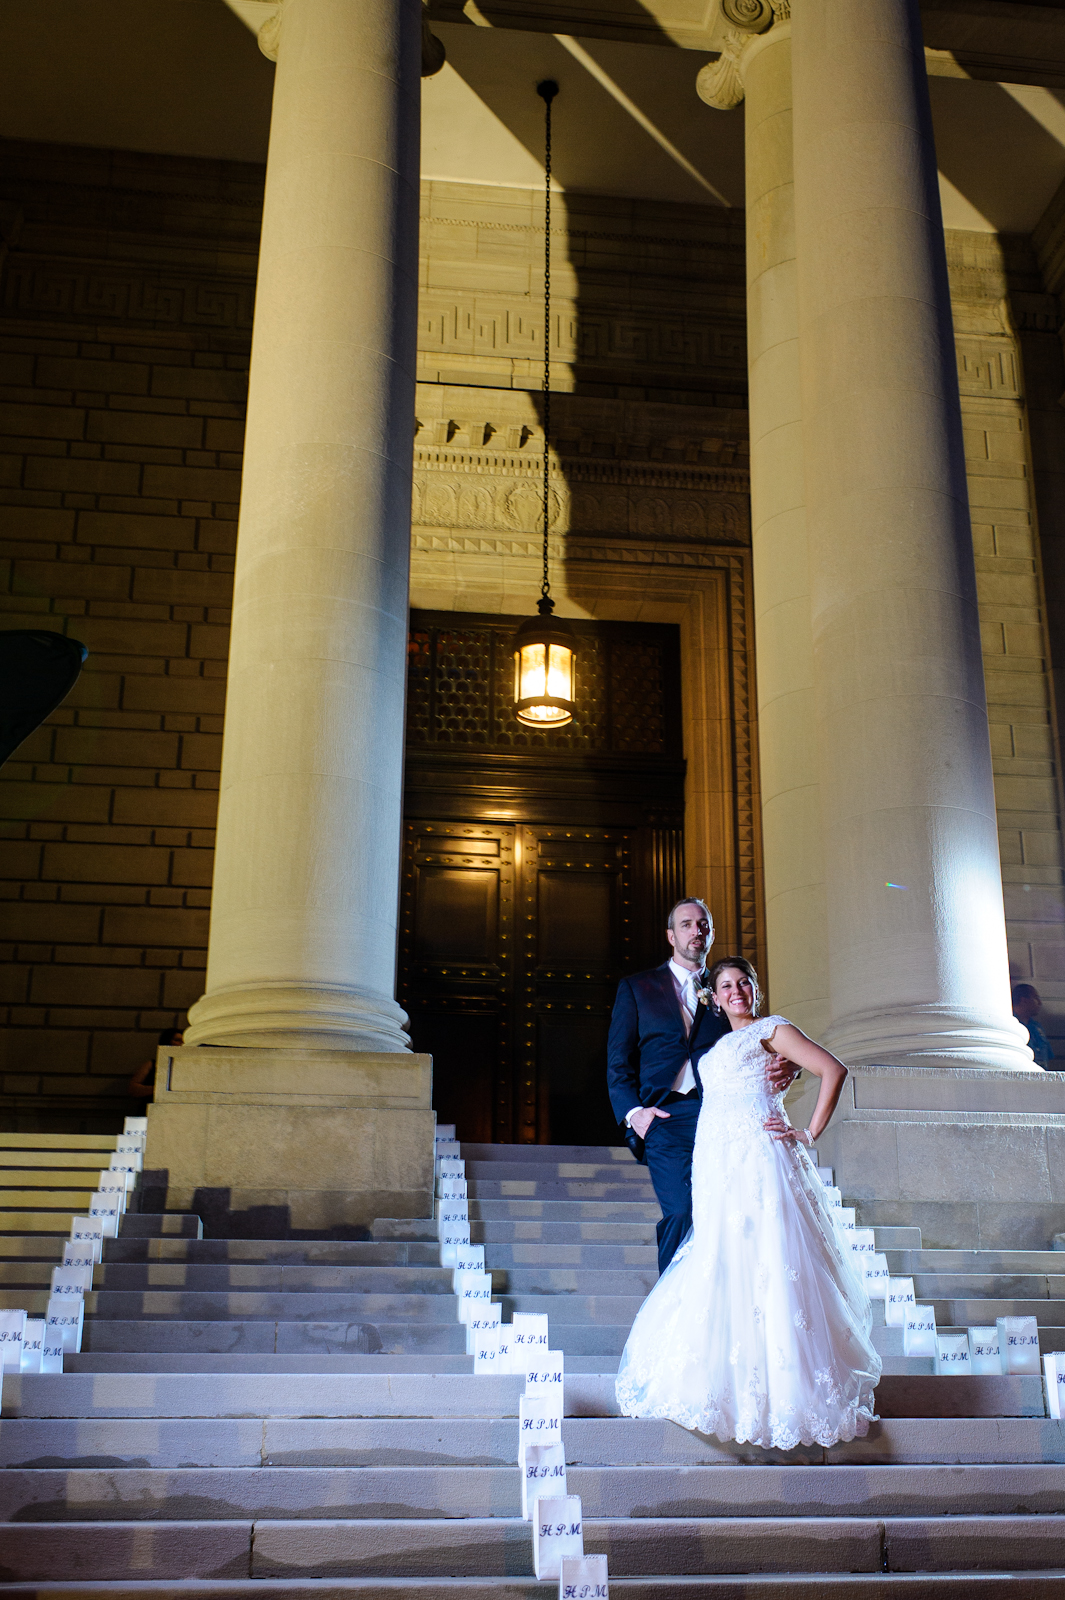 wedding photography dc photographer - district of columbia photography weddingphoto 2012_-46.jpg